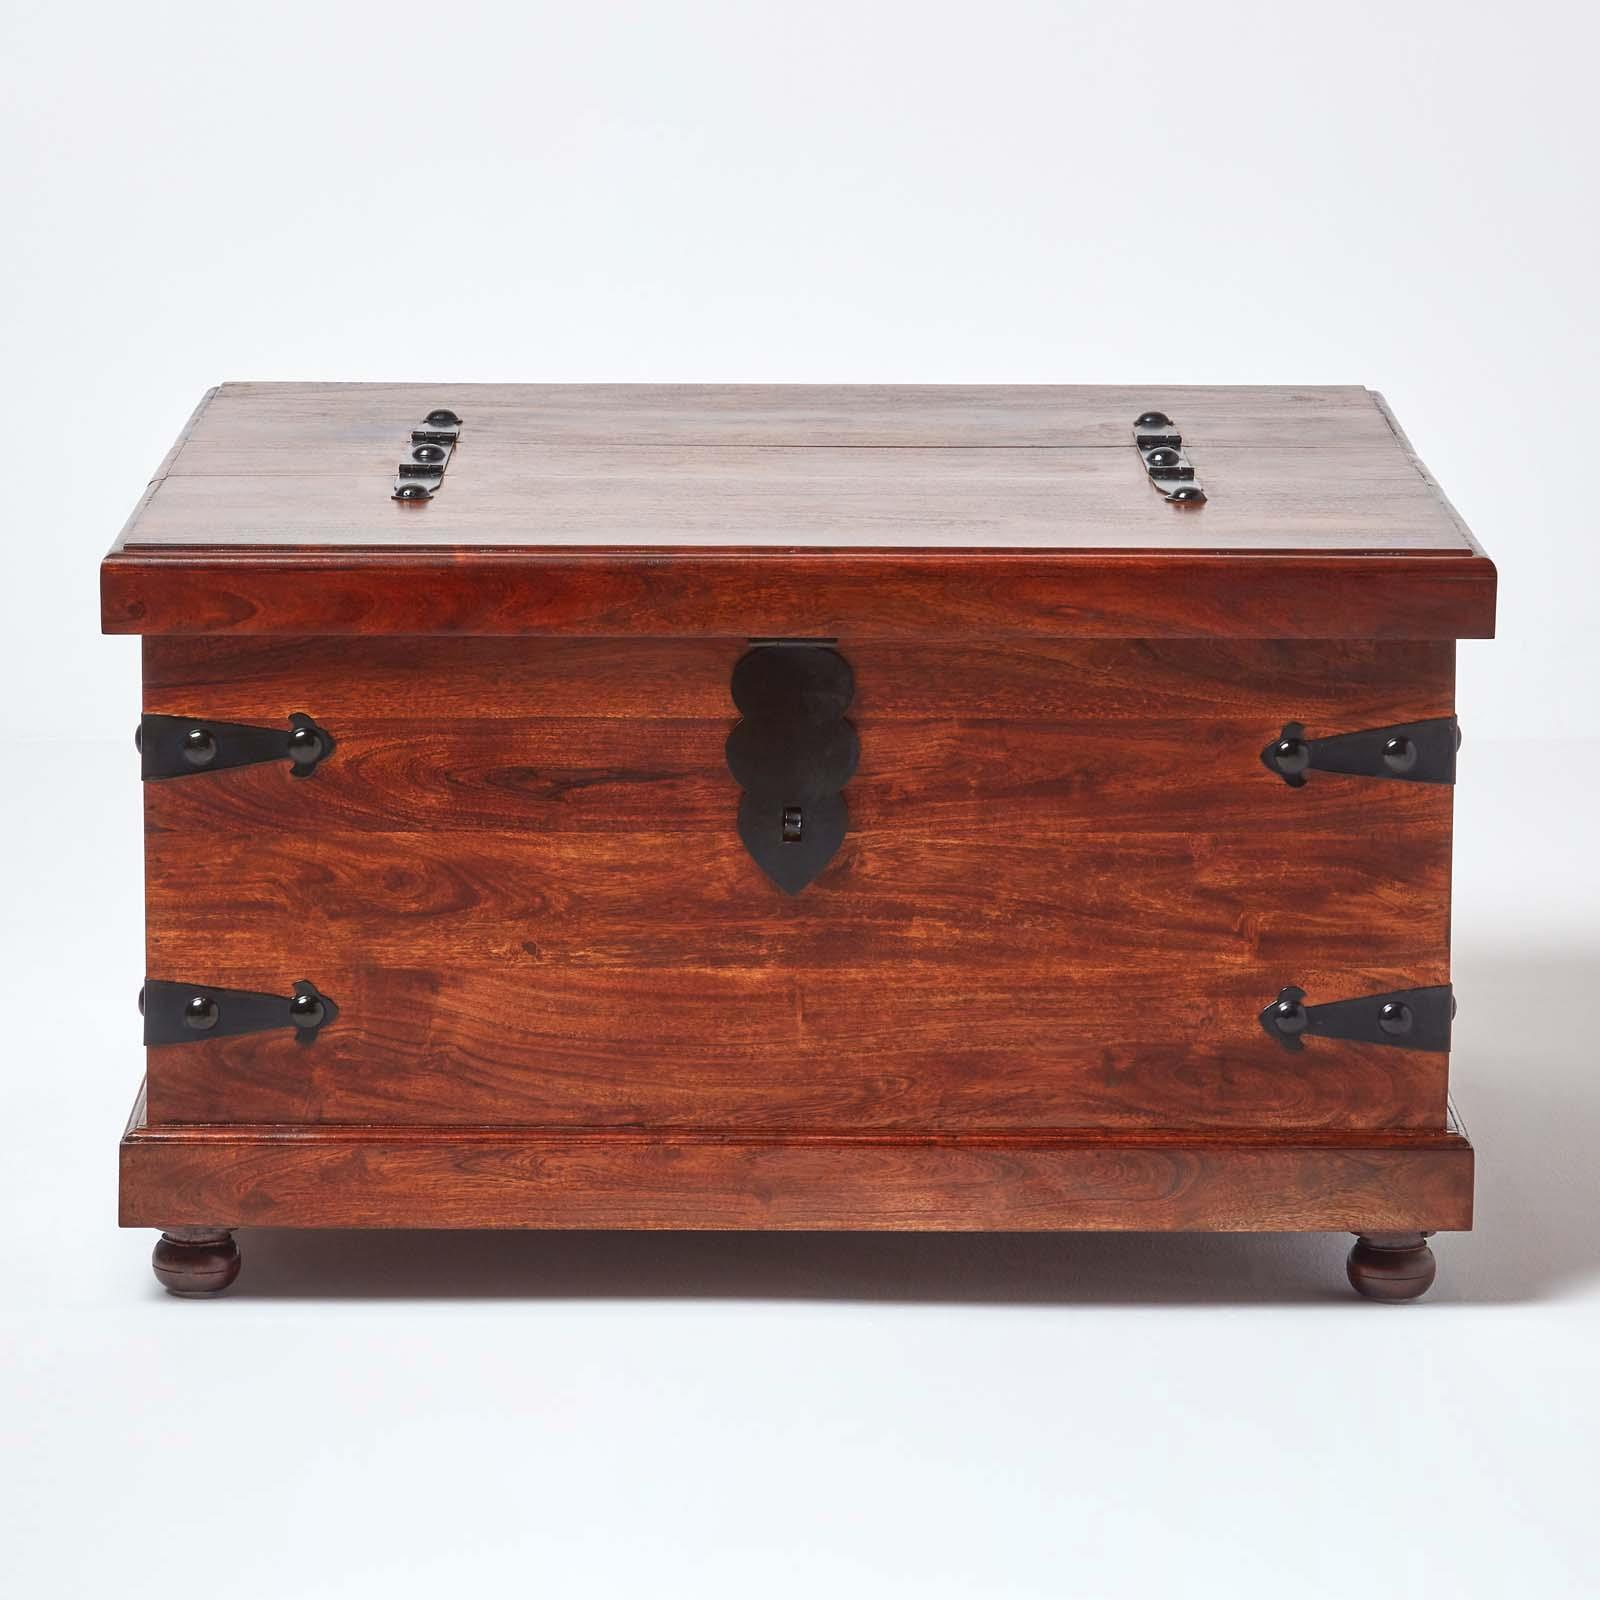 Homescapes Takhat Large Square Coffee Table Trunk 5055967435155 Ebay